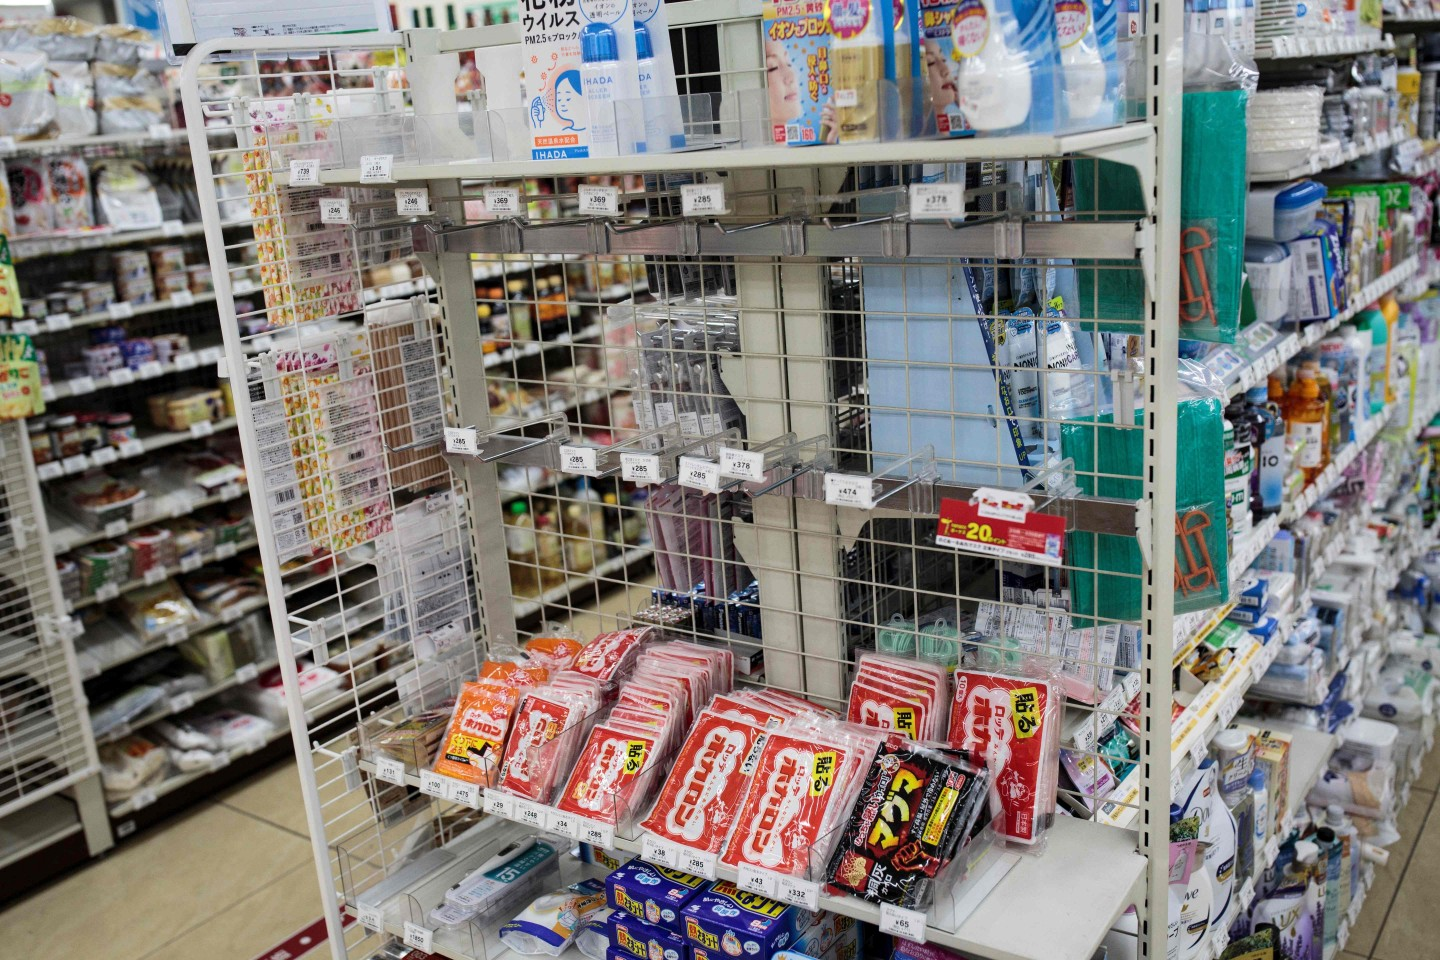 The picture shows empty shelves for face masks in a convenience store in Tokyo on 3 February 2020. (Behrouz Mehri/AFP)